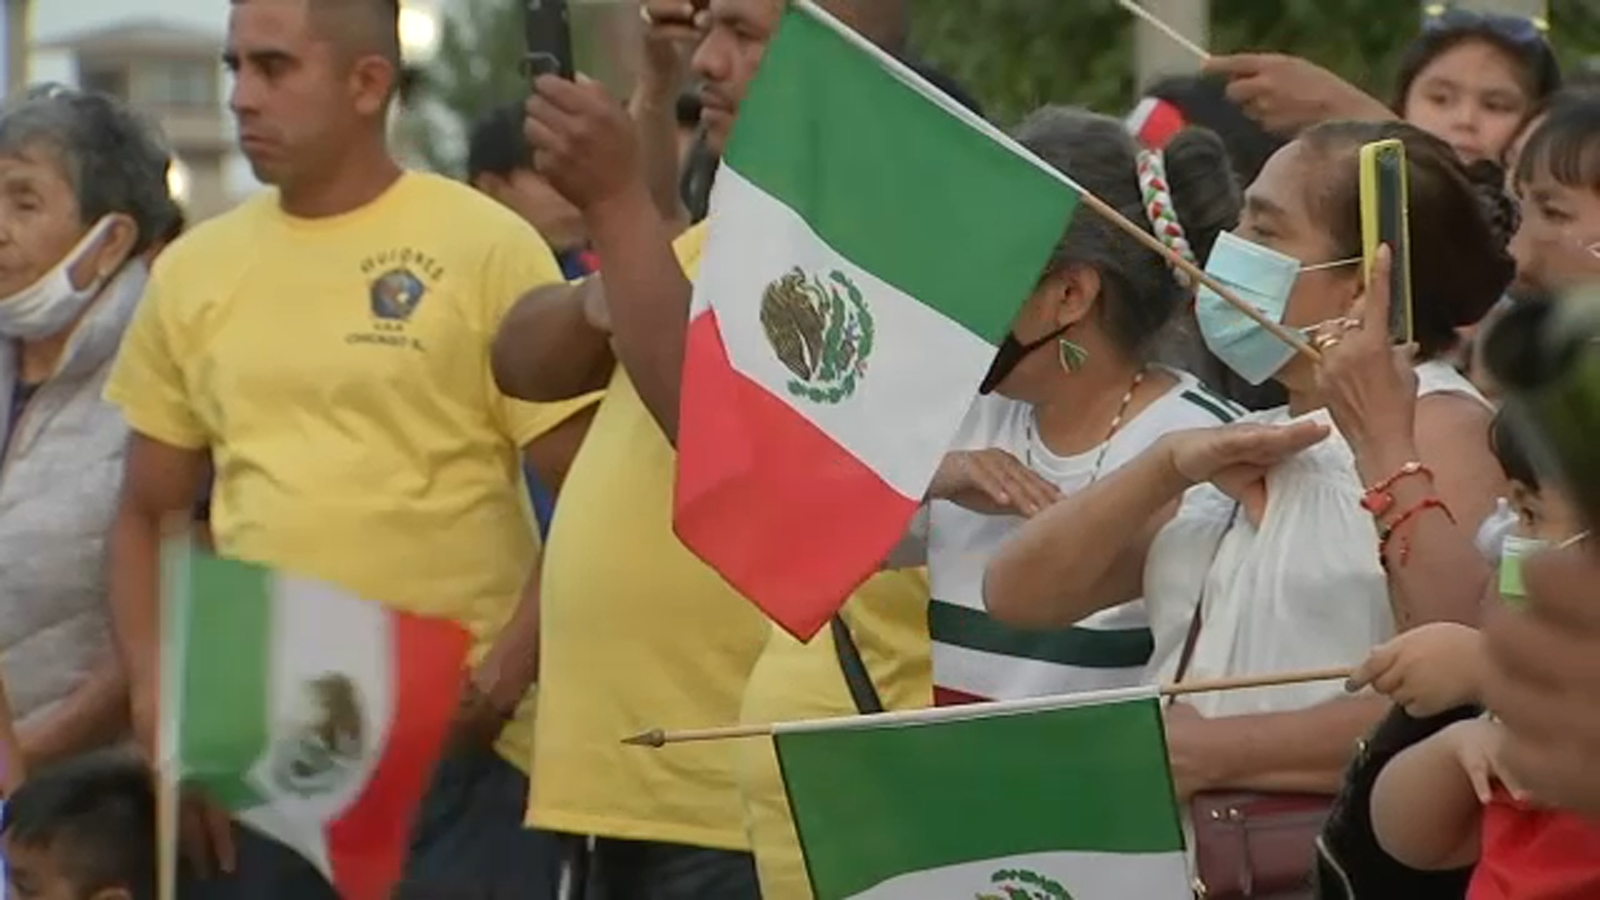 Chicago's Little Village holds 'El Grito De Dolores' celebration ahead of Mexican Independence Day after parade canceled - WLS-T